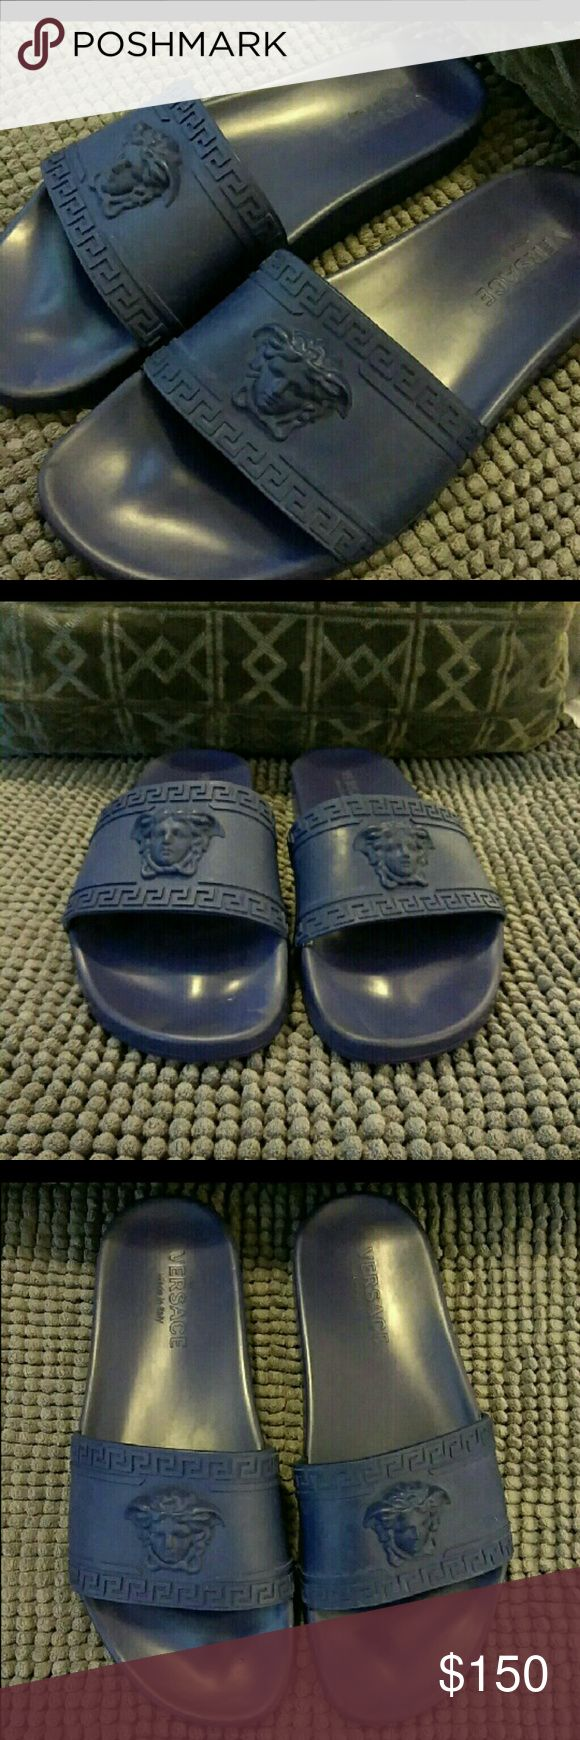 🔥sale🔥Versace slides Used only a few times. In great condition Versace Shoes